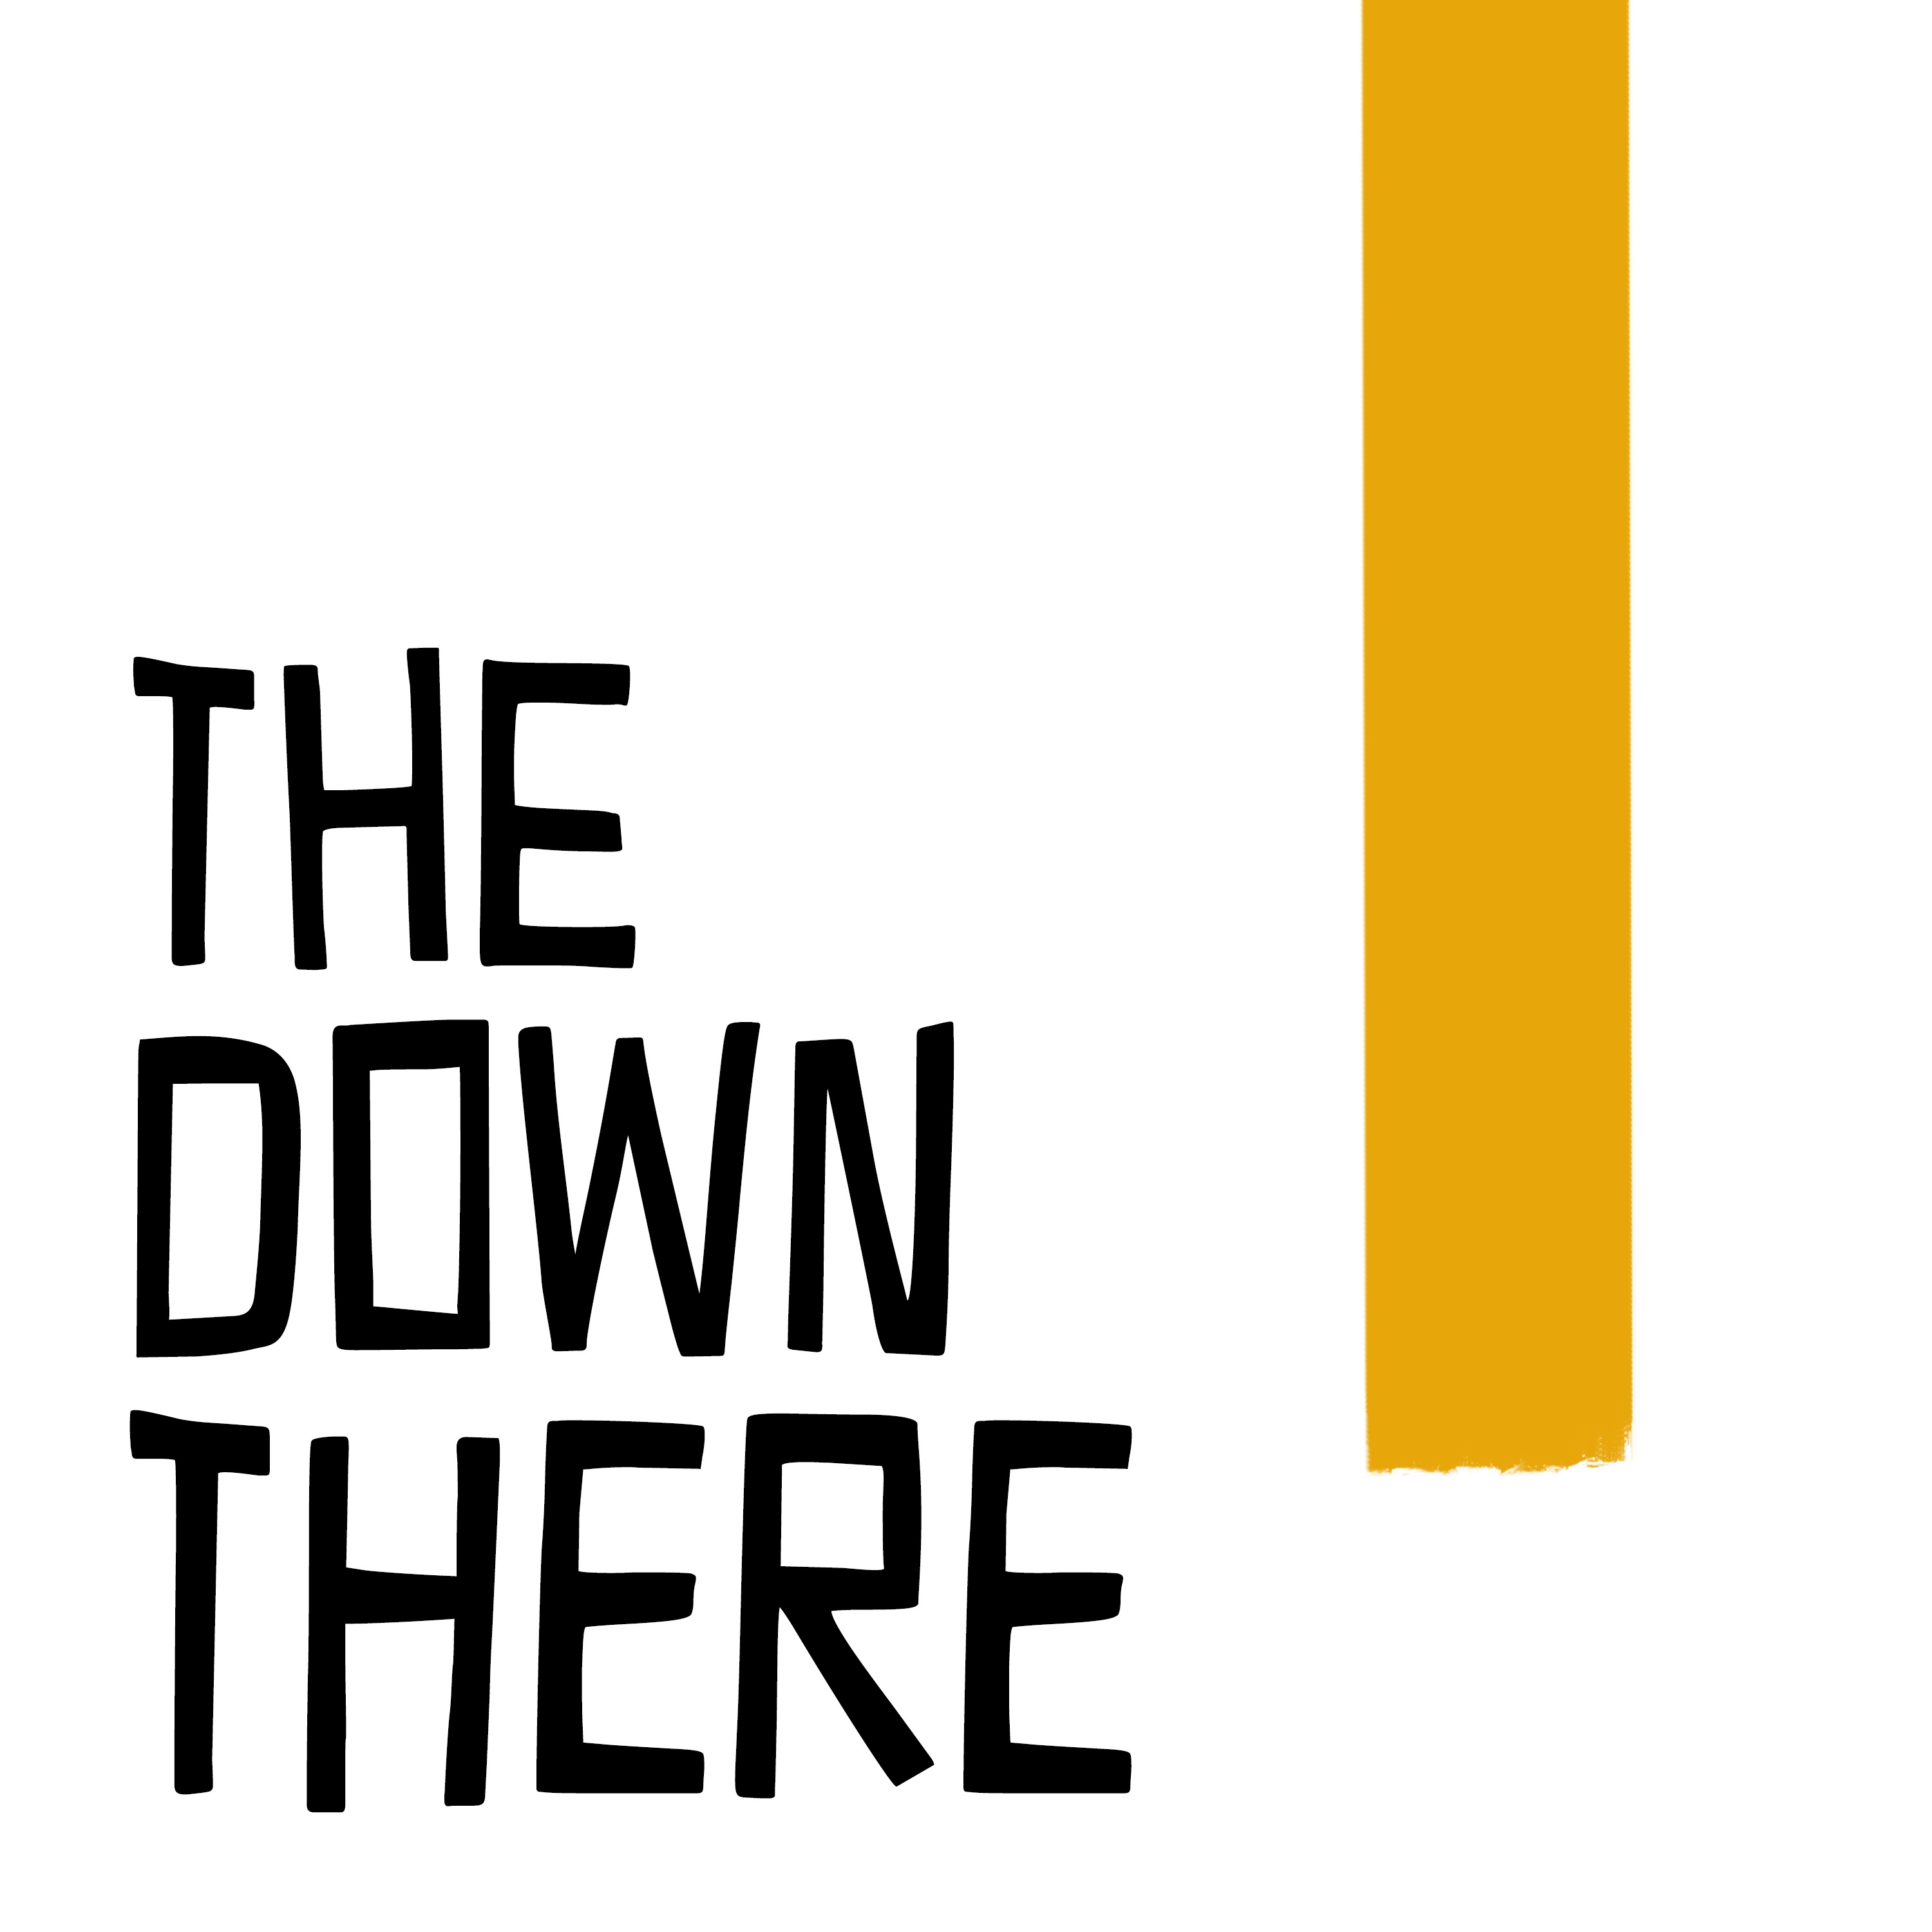 A logo showing the words The Down There in a black font, with a yellow line running down the right side of the image